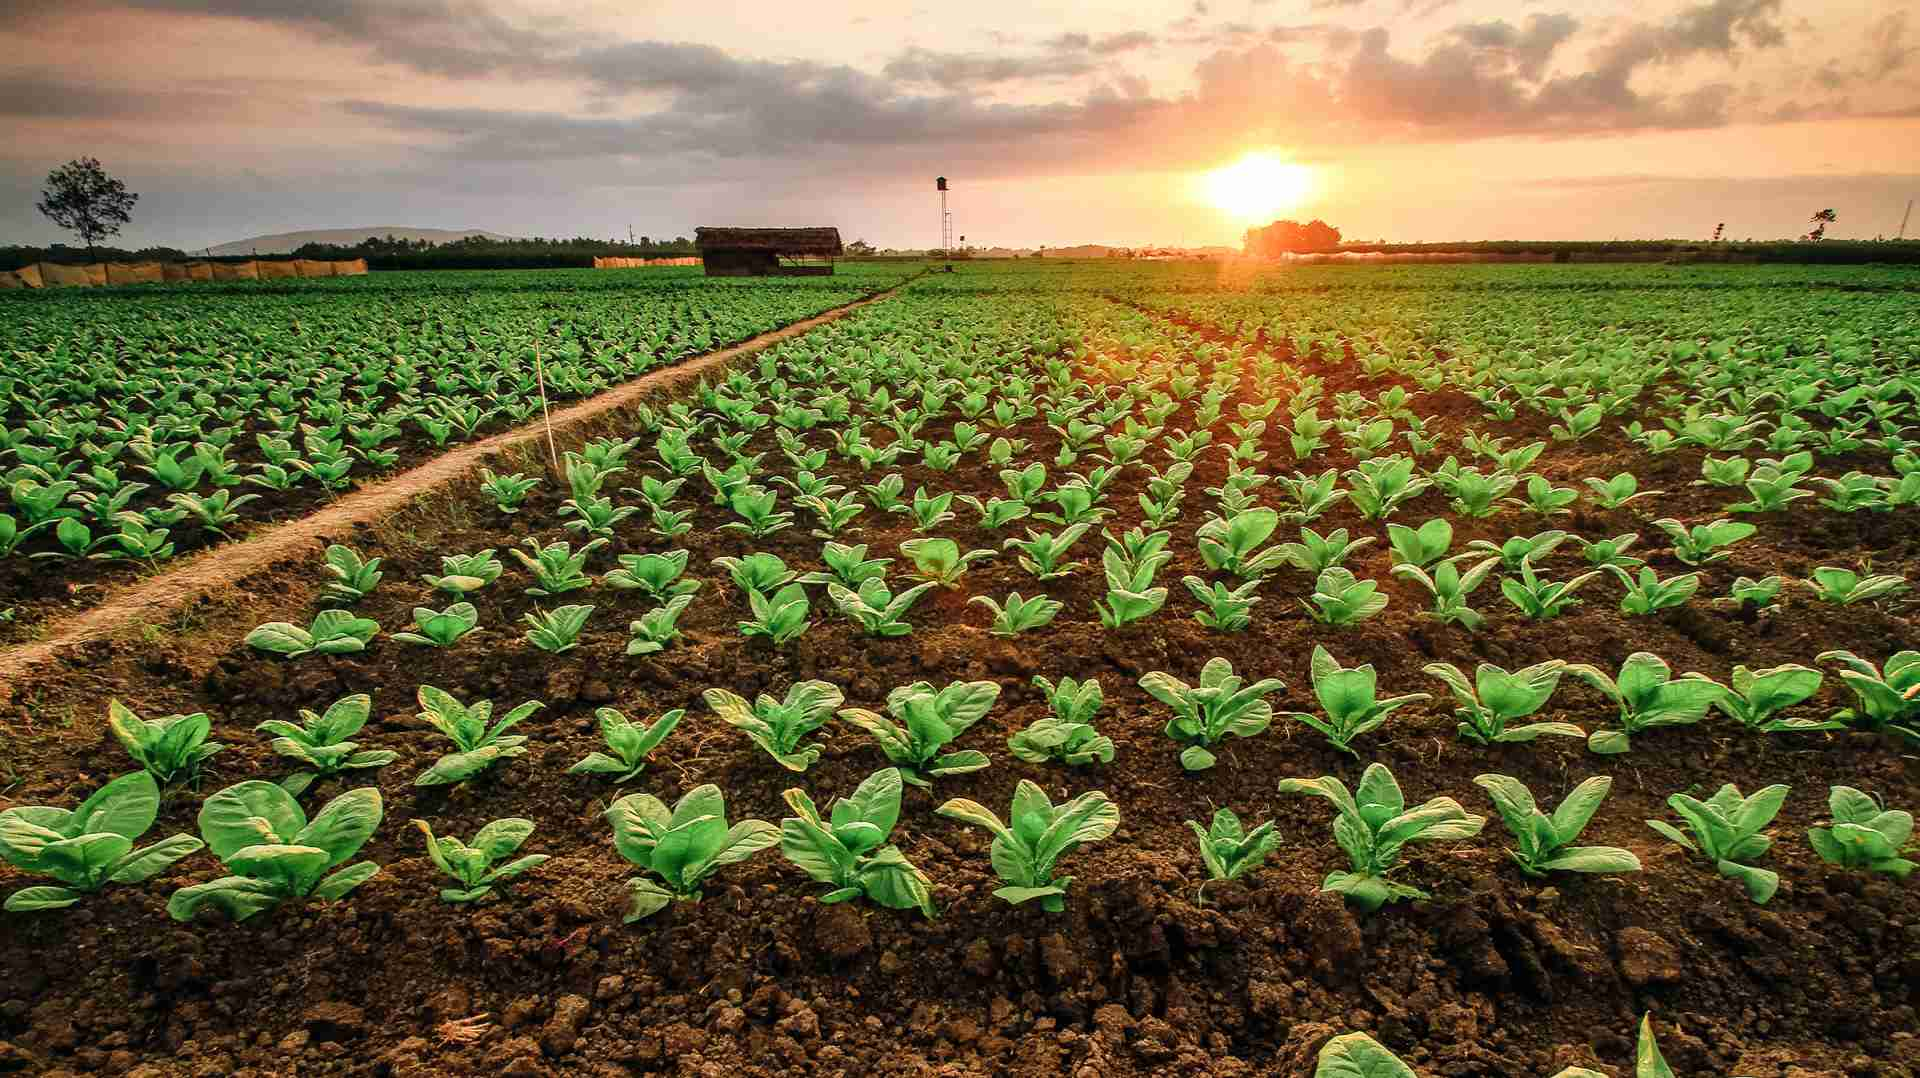 wide shot of tobacco plant fields at sunset